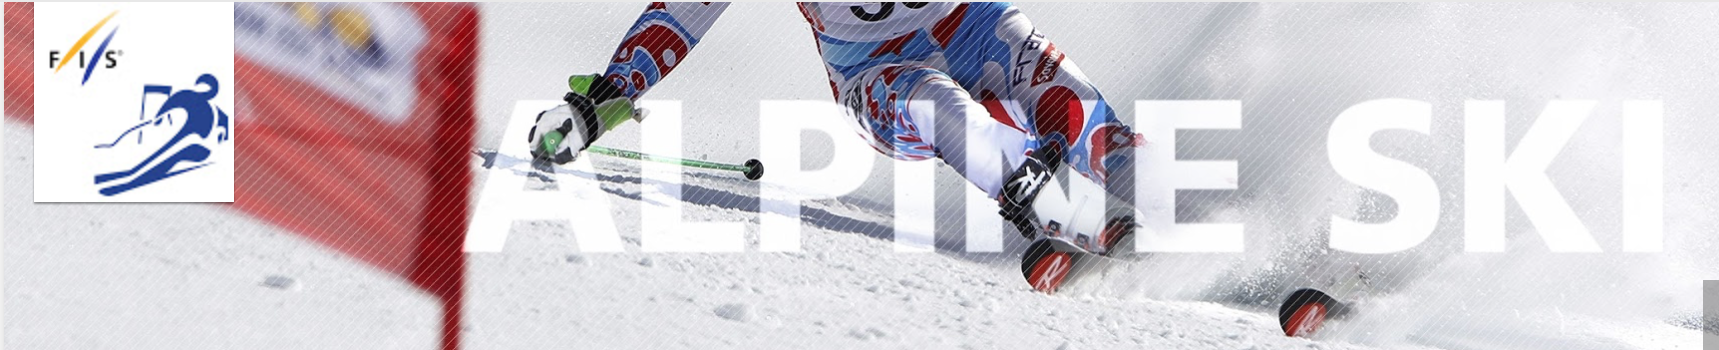 alpine-ski-page-photo